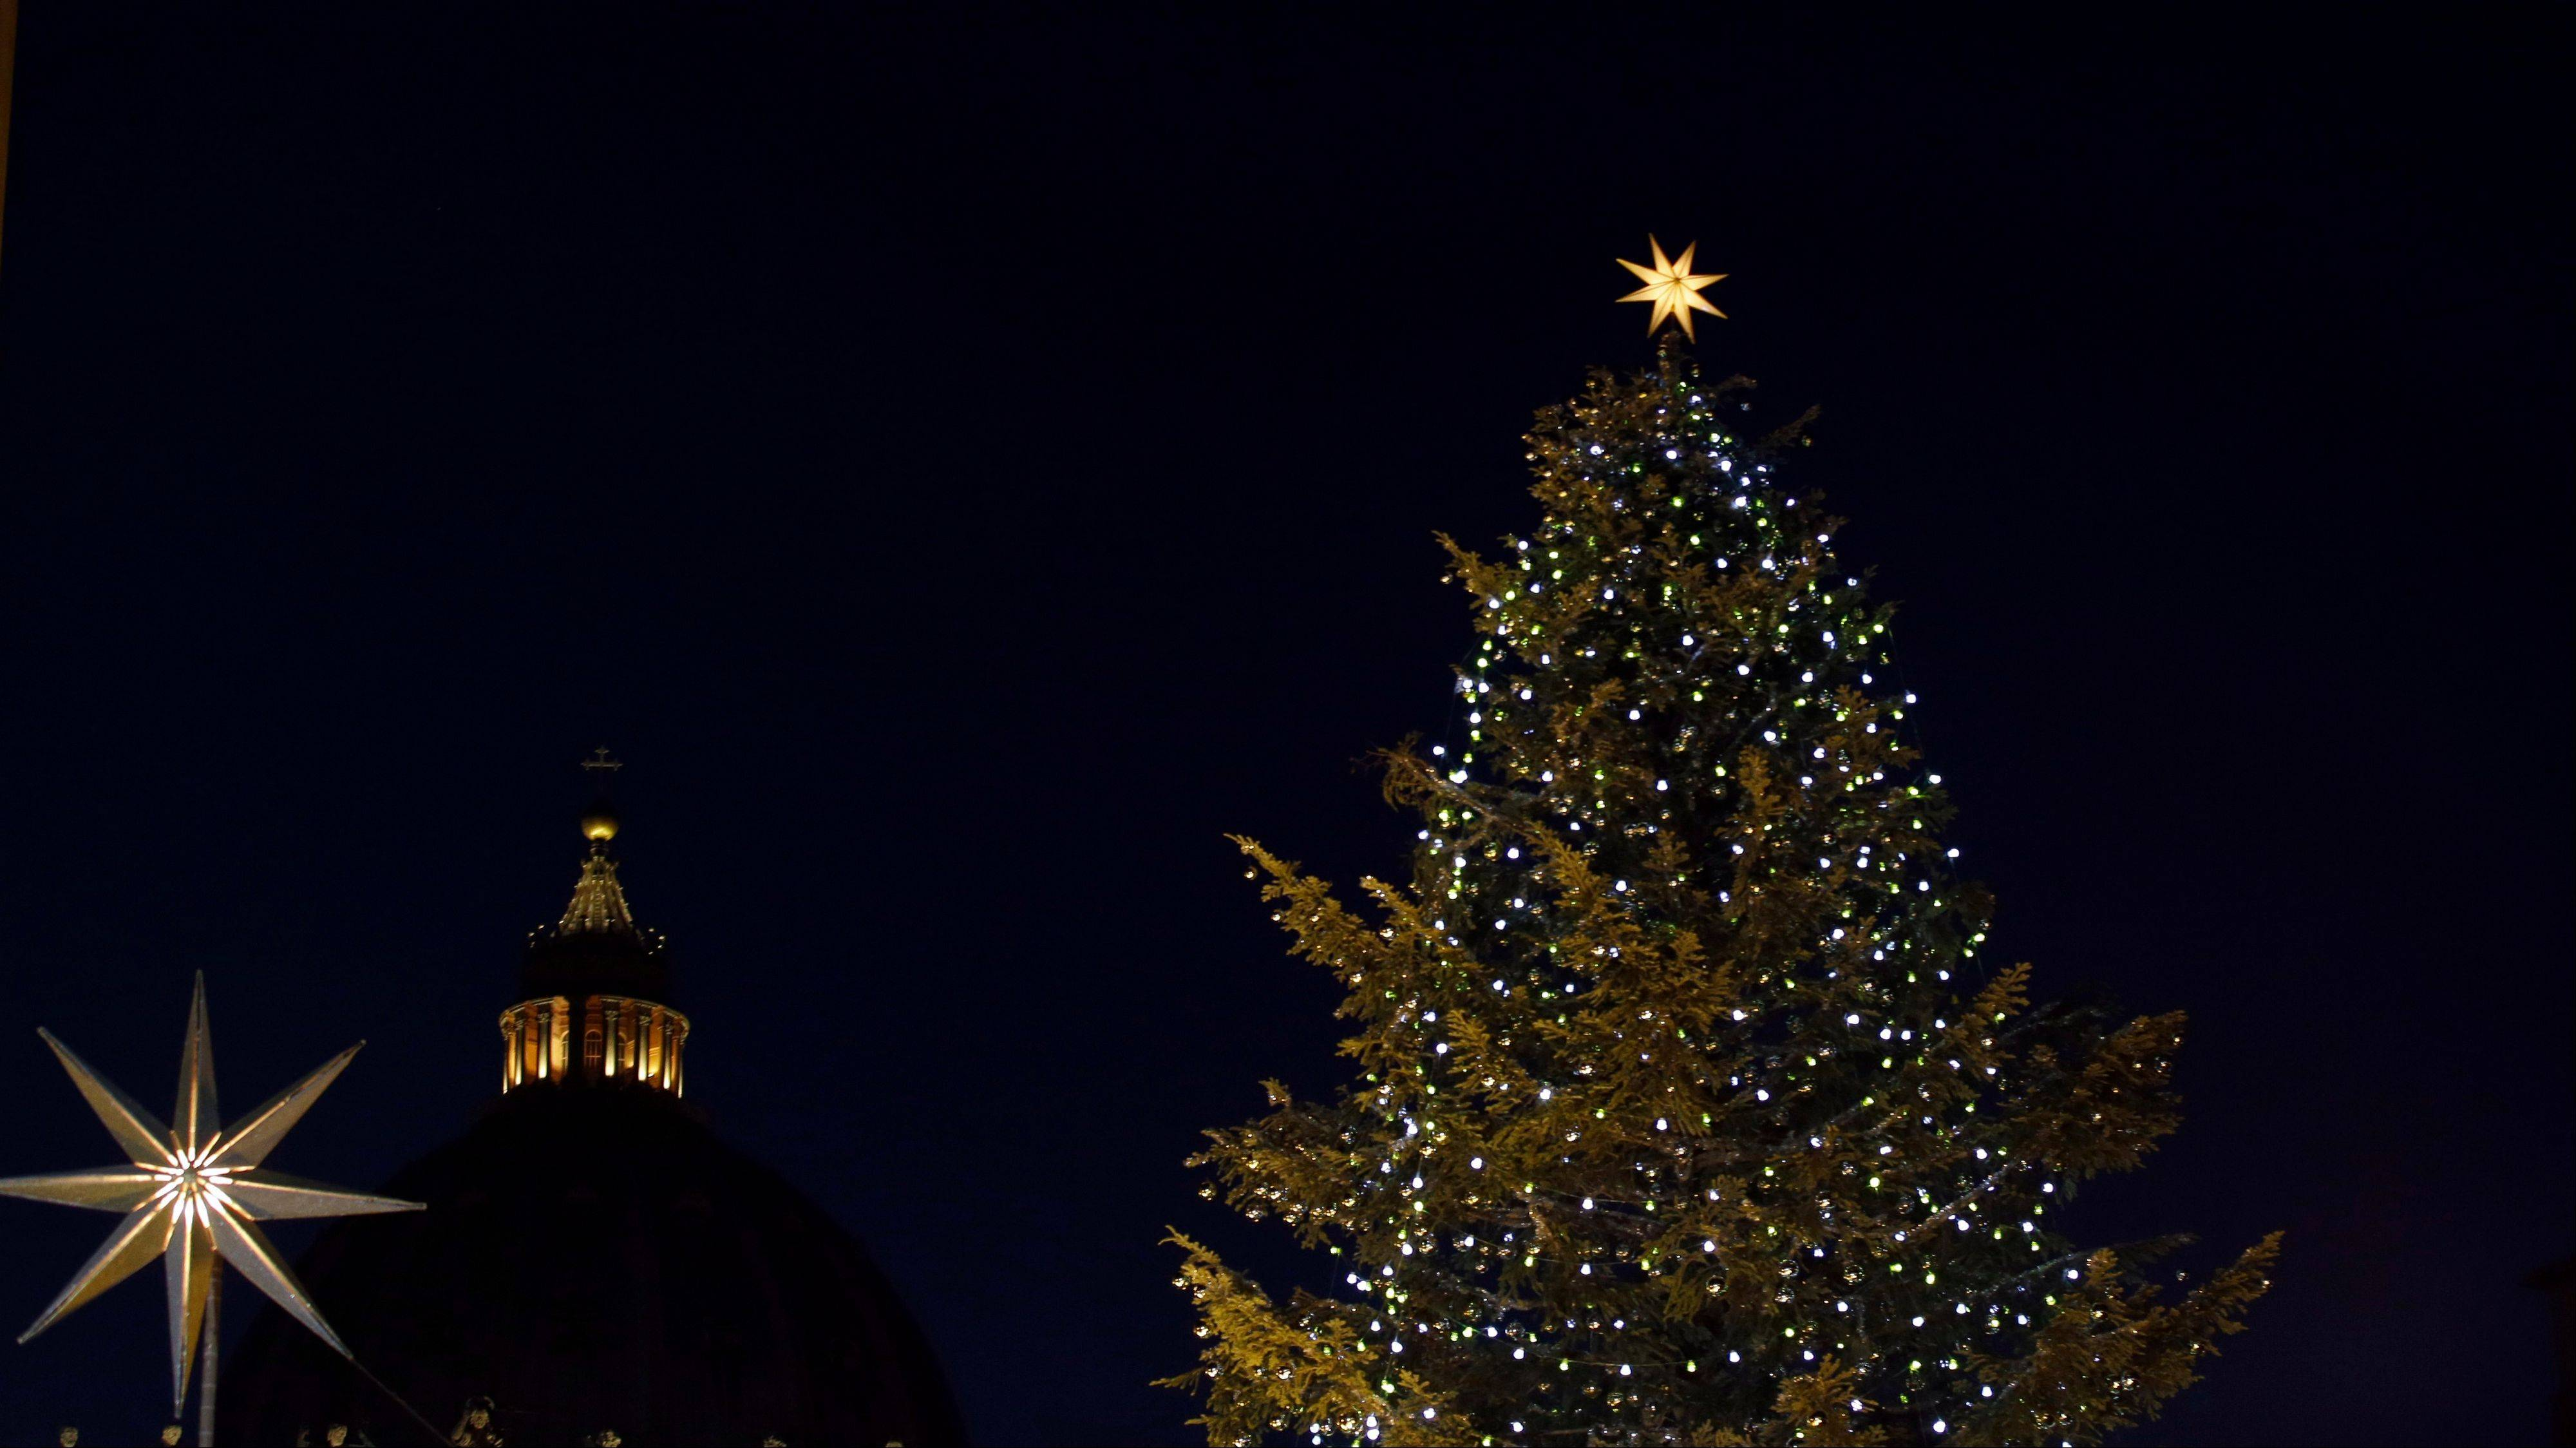 The dome of St. Peter's Basilica, center, is framed by a Christmas tree at the Vatican Monday, Dec. 24, 2012. Pope Benedict XVI has lit a Christmas peace candle set on the windowsill of his private studio overlooking square. Pilgrims, tourists and Romans gathered below in St. Peter's Square for the inauguration Monday evening of a Nativity scene and cheered when the flame was lit. Later, he will appear in St. Peter's Basilica to lead Christmas Eve Mass.